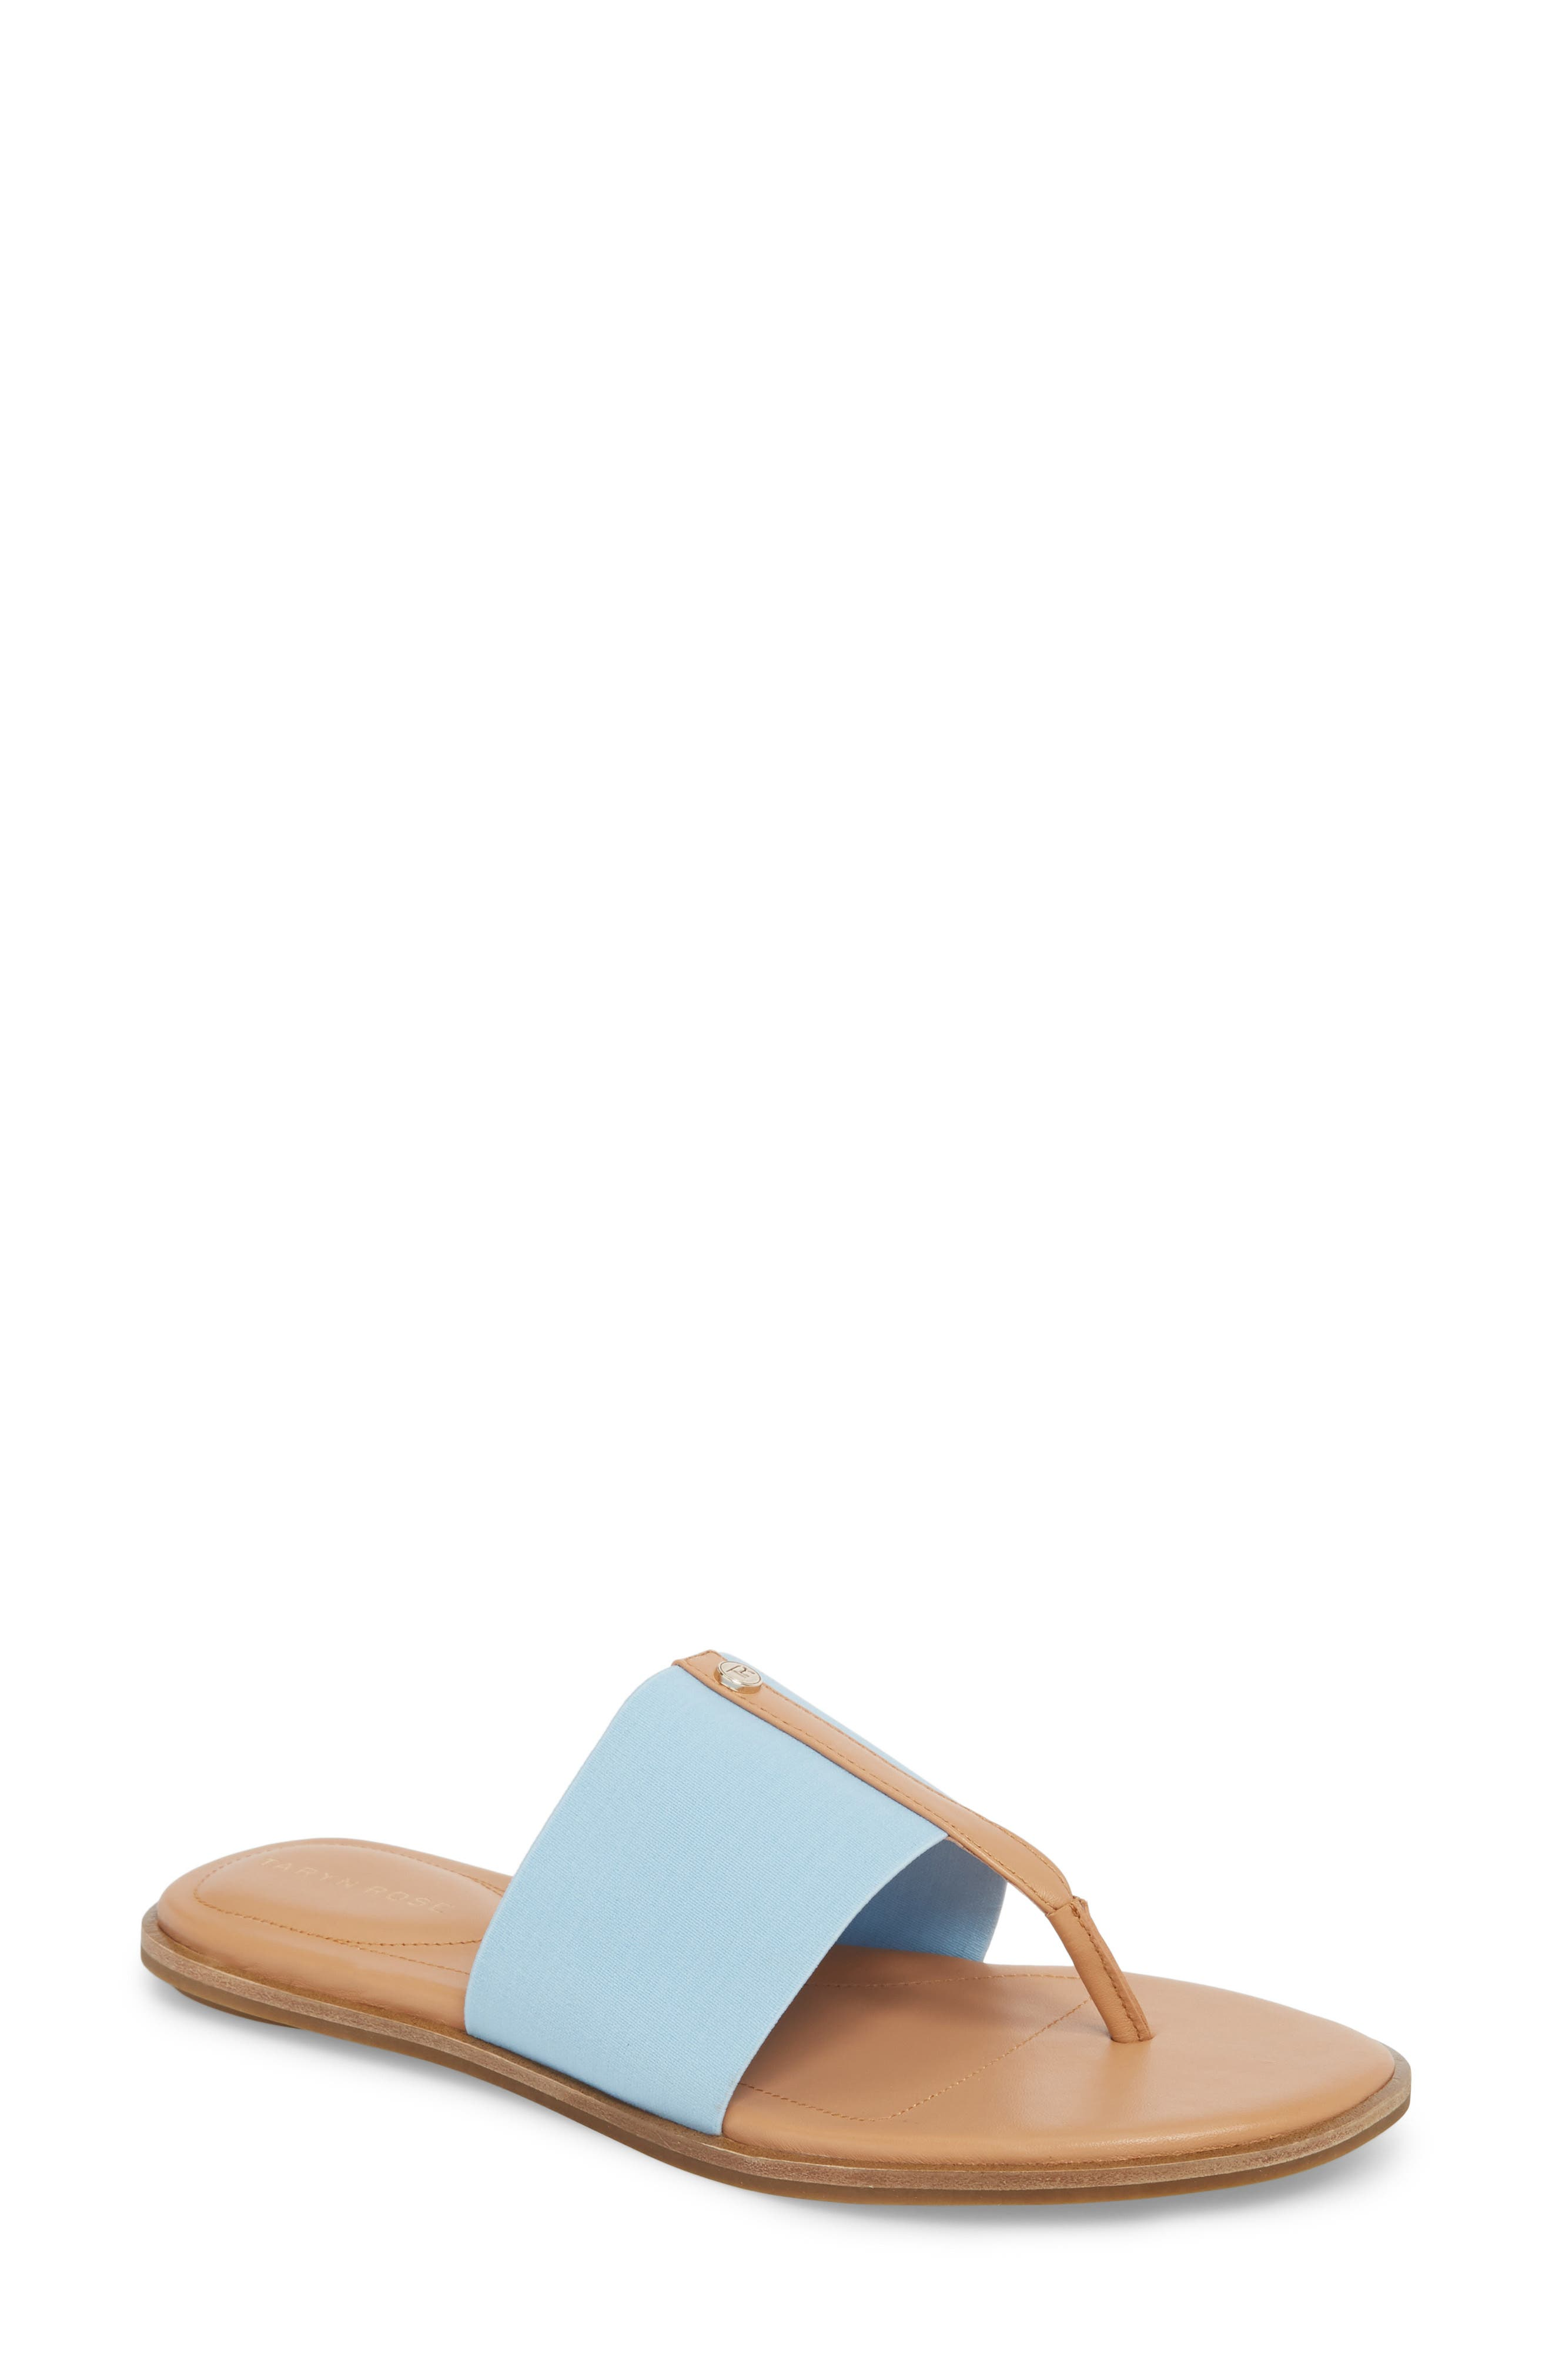 Kamryn Flip Flop,                         Main,                         color, Sky Leather